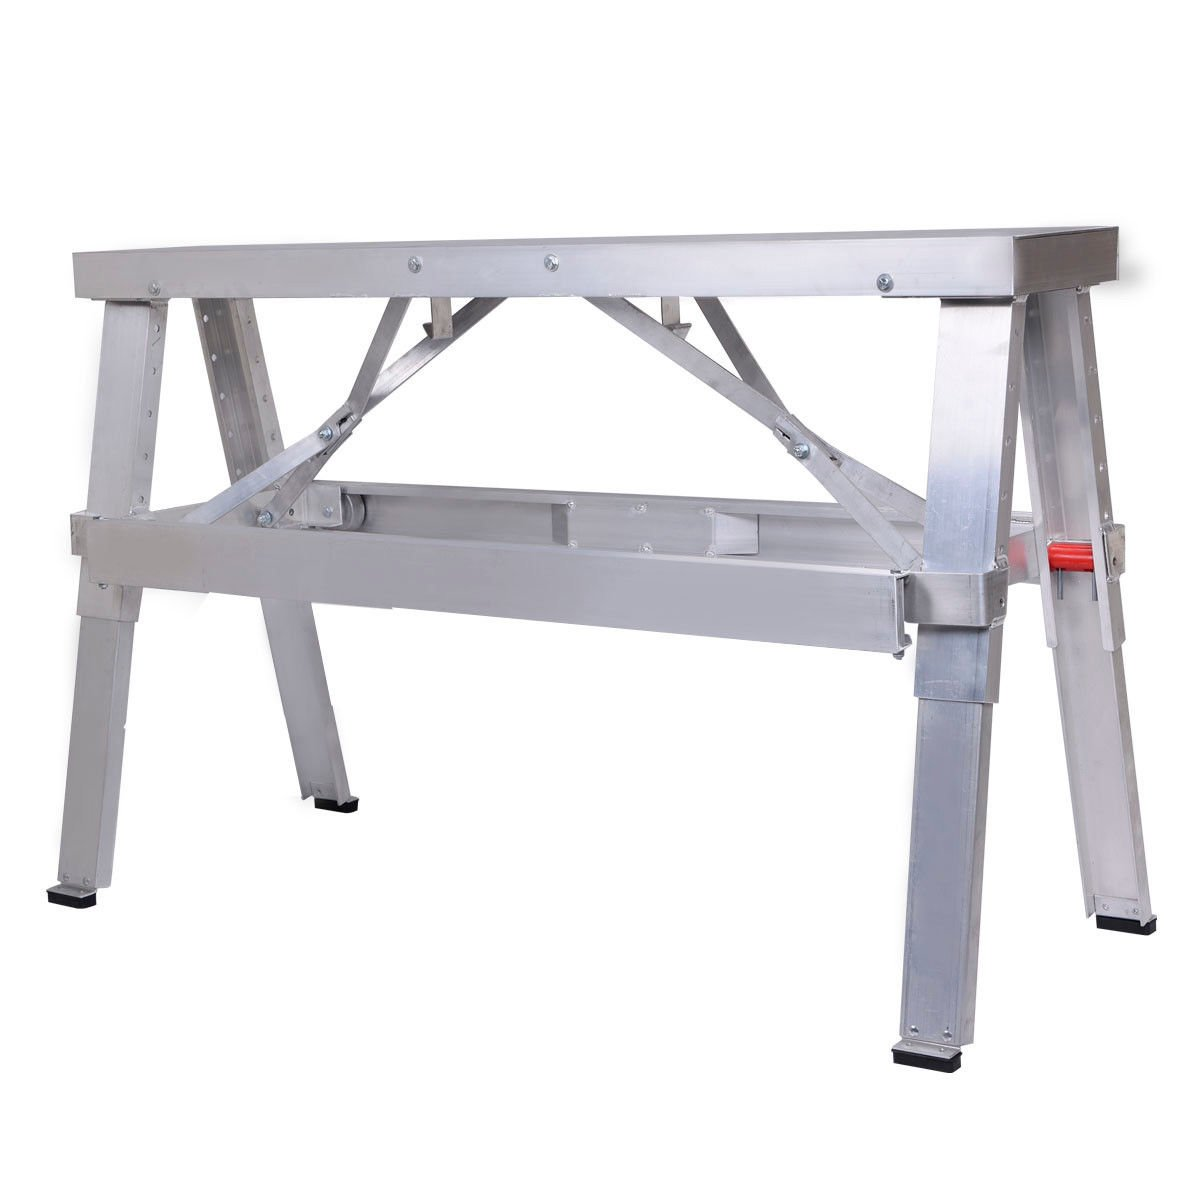 Goplus Adjustable Tool Professional Aluminum Drywall Bench Walk-Up 18''-30'' Folding Bench Heavy Duty by Goplus